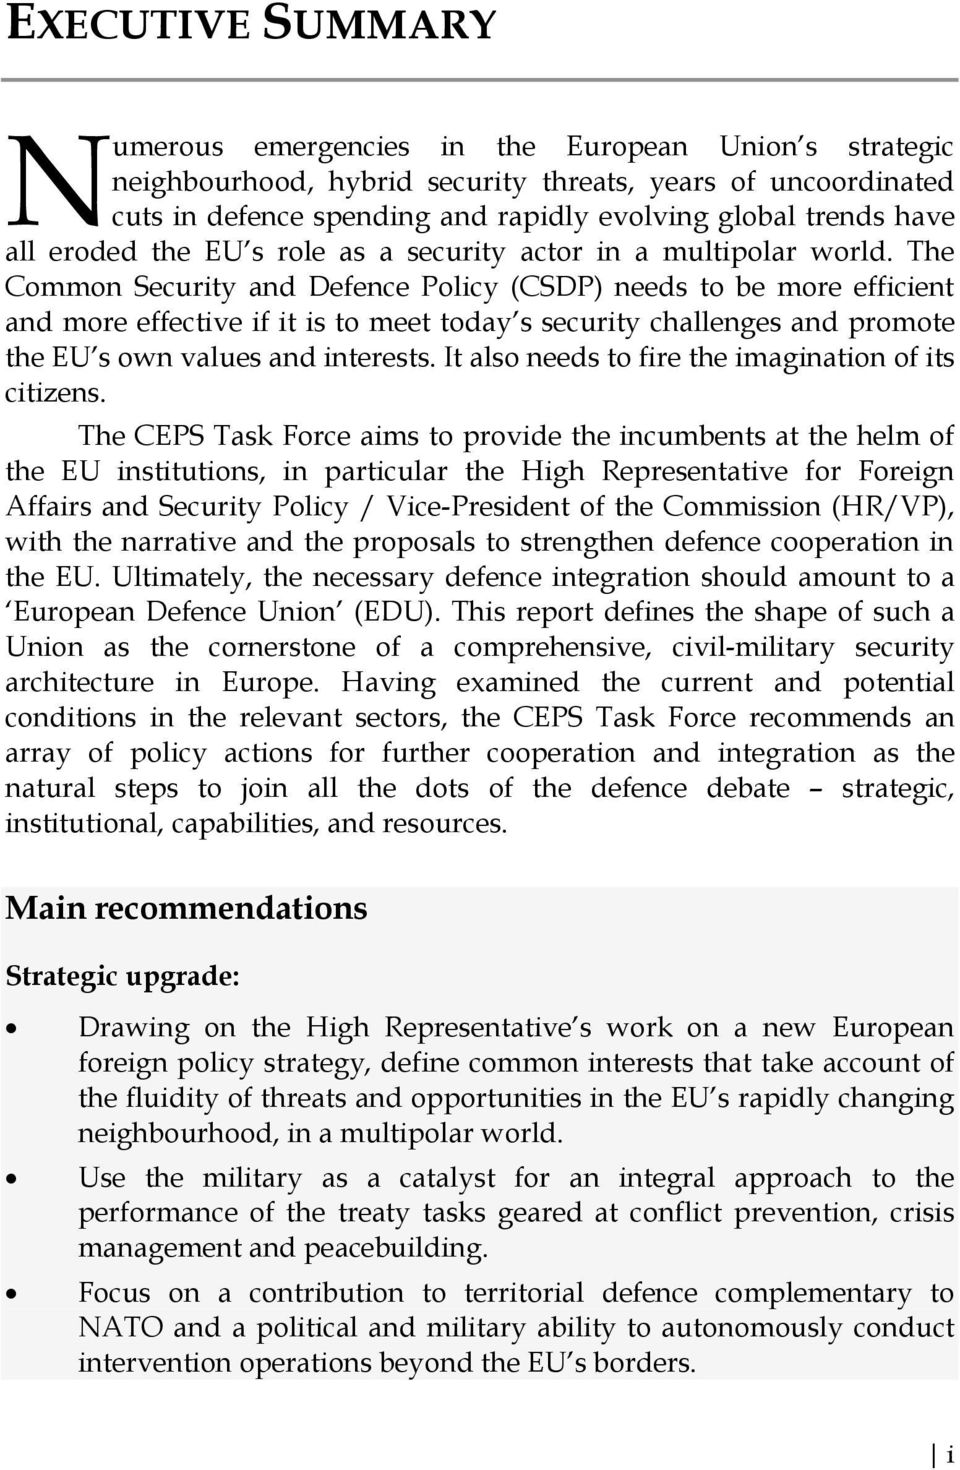 The Common Security and Defence Policy (CSDP) needs to be more efficient and more effective if it is to meet today s security challenges and promote the EU s own values and interests.